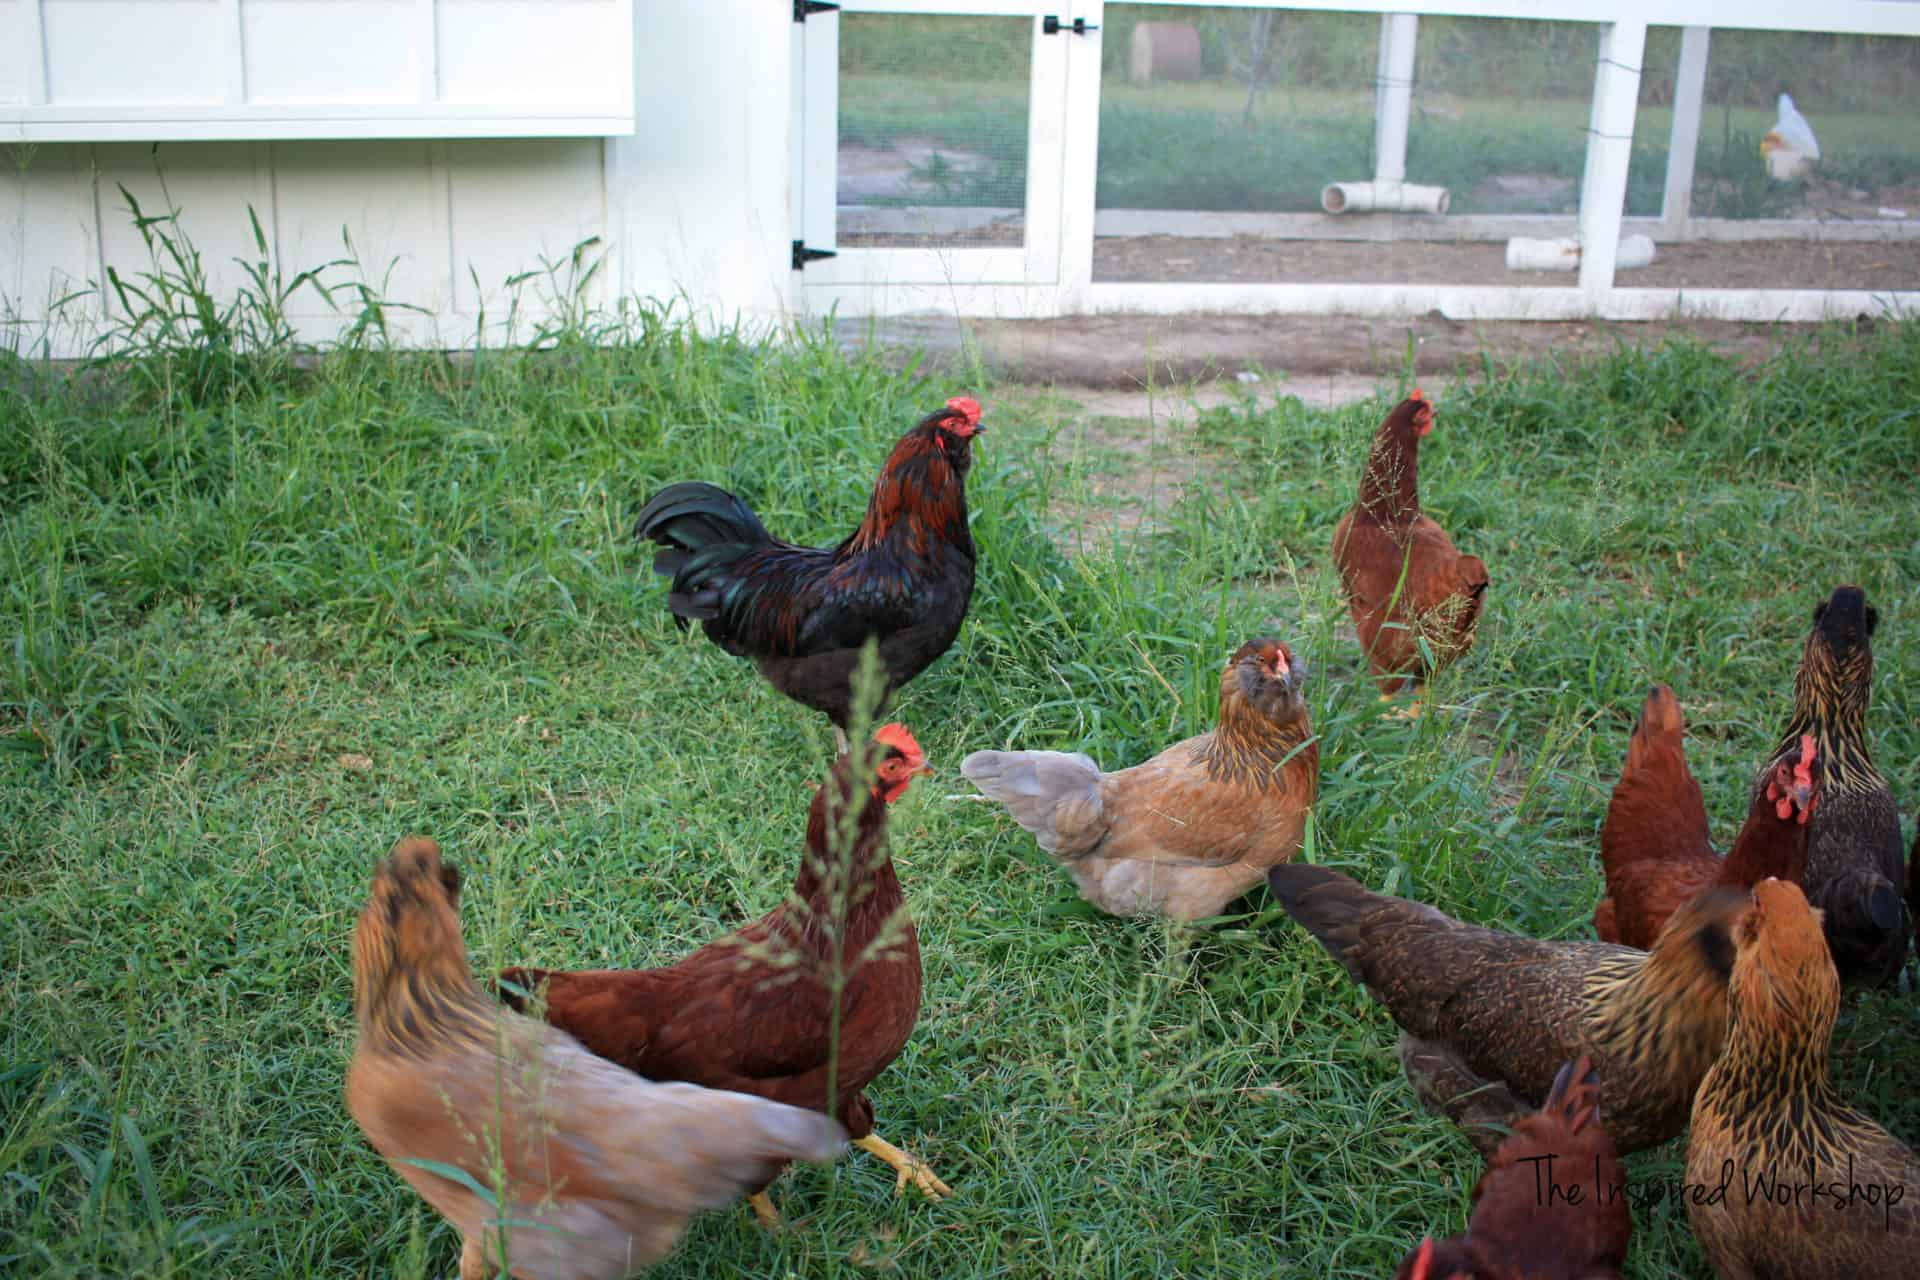 DIY Chicken Coop Chickens Free Ranging